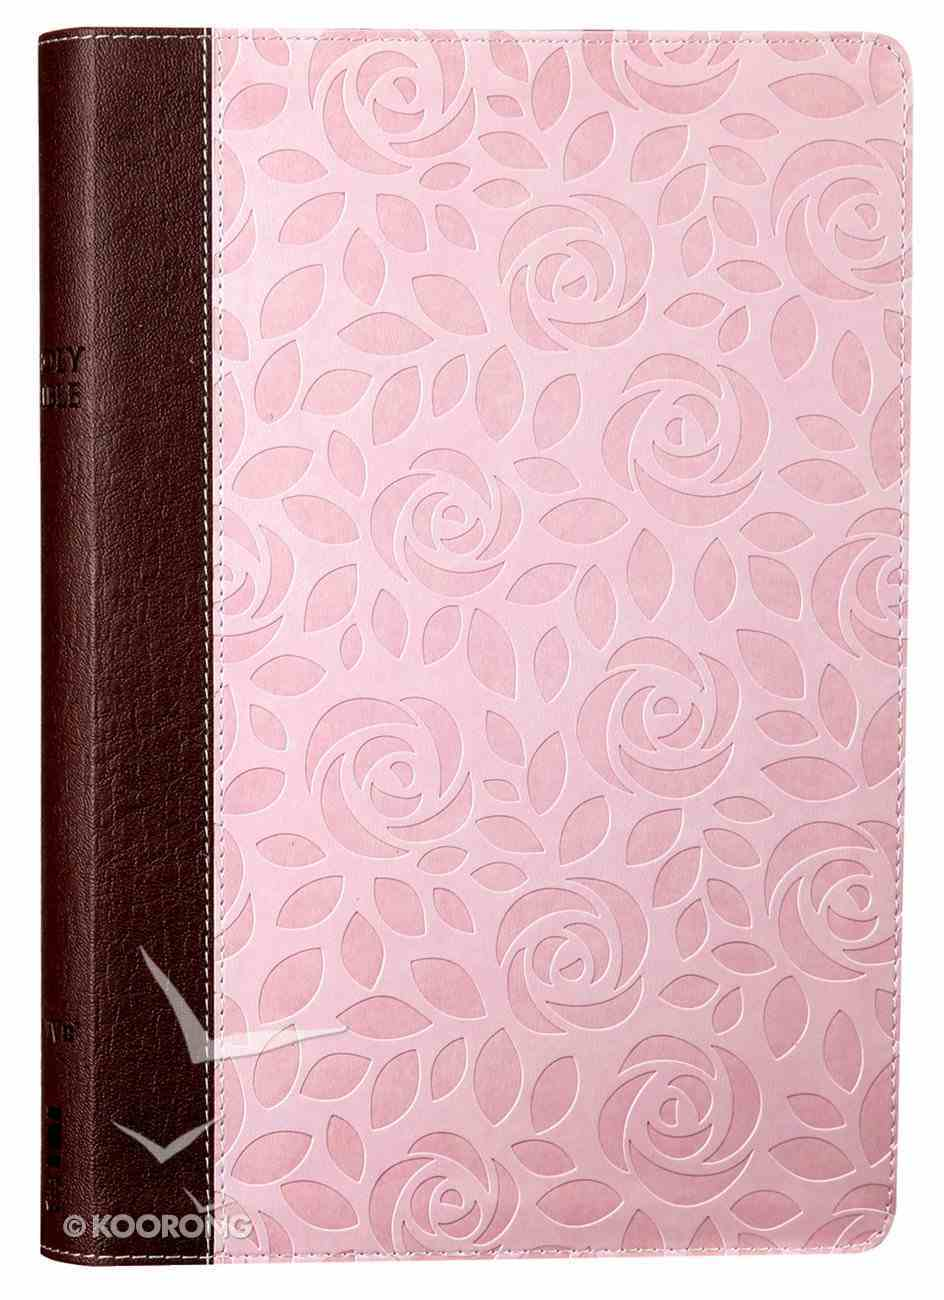 NIV Thinline Bible Large Print Pink Floral (Red Letter Edition) Premium Imitation Leather